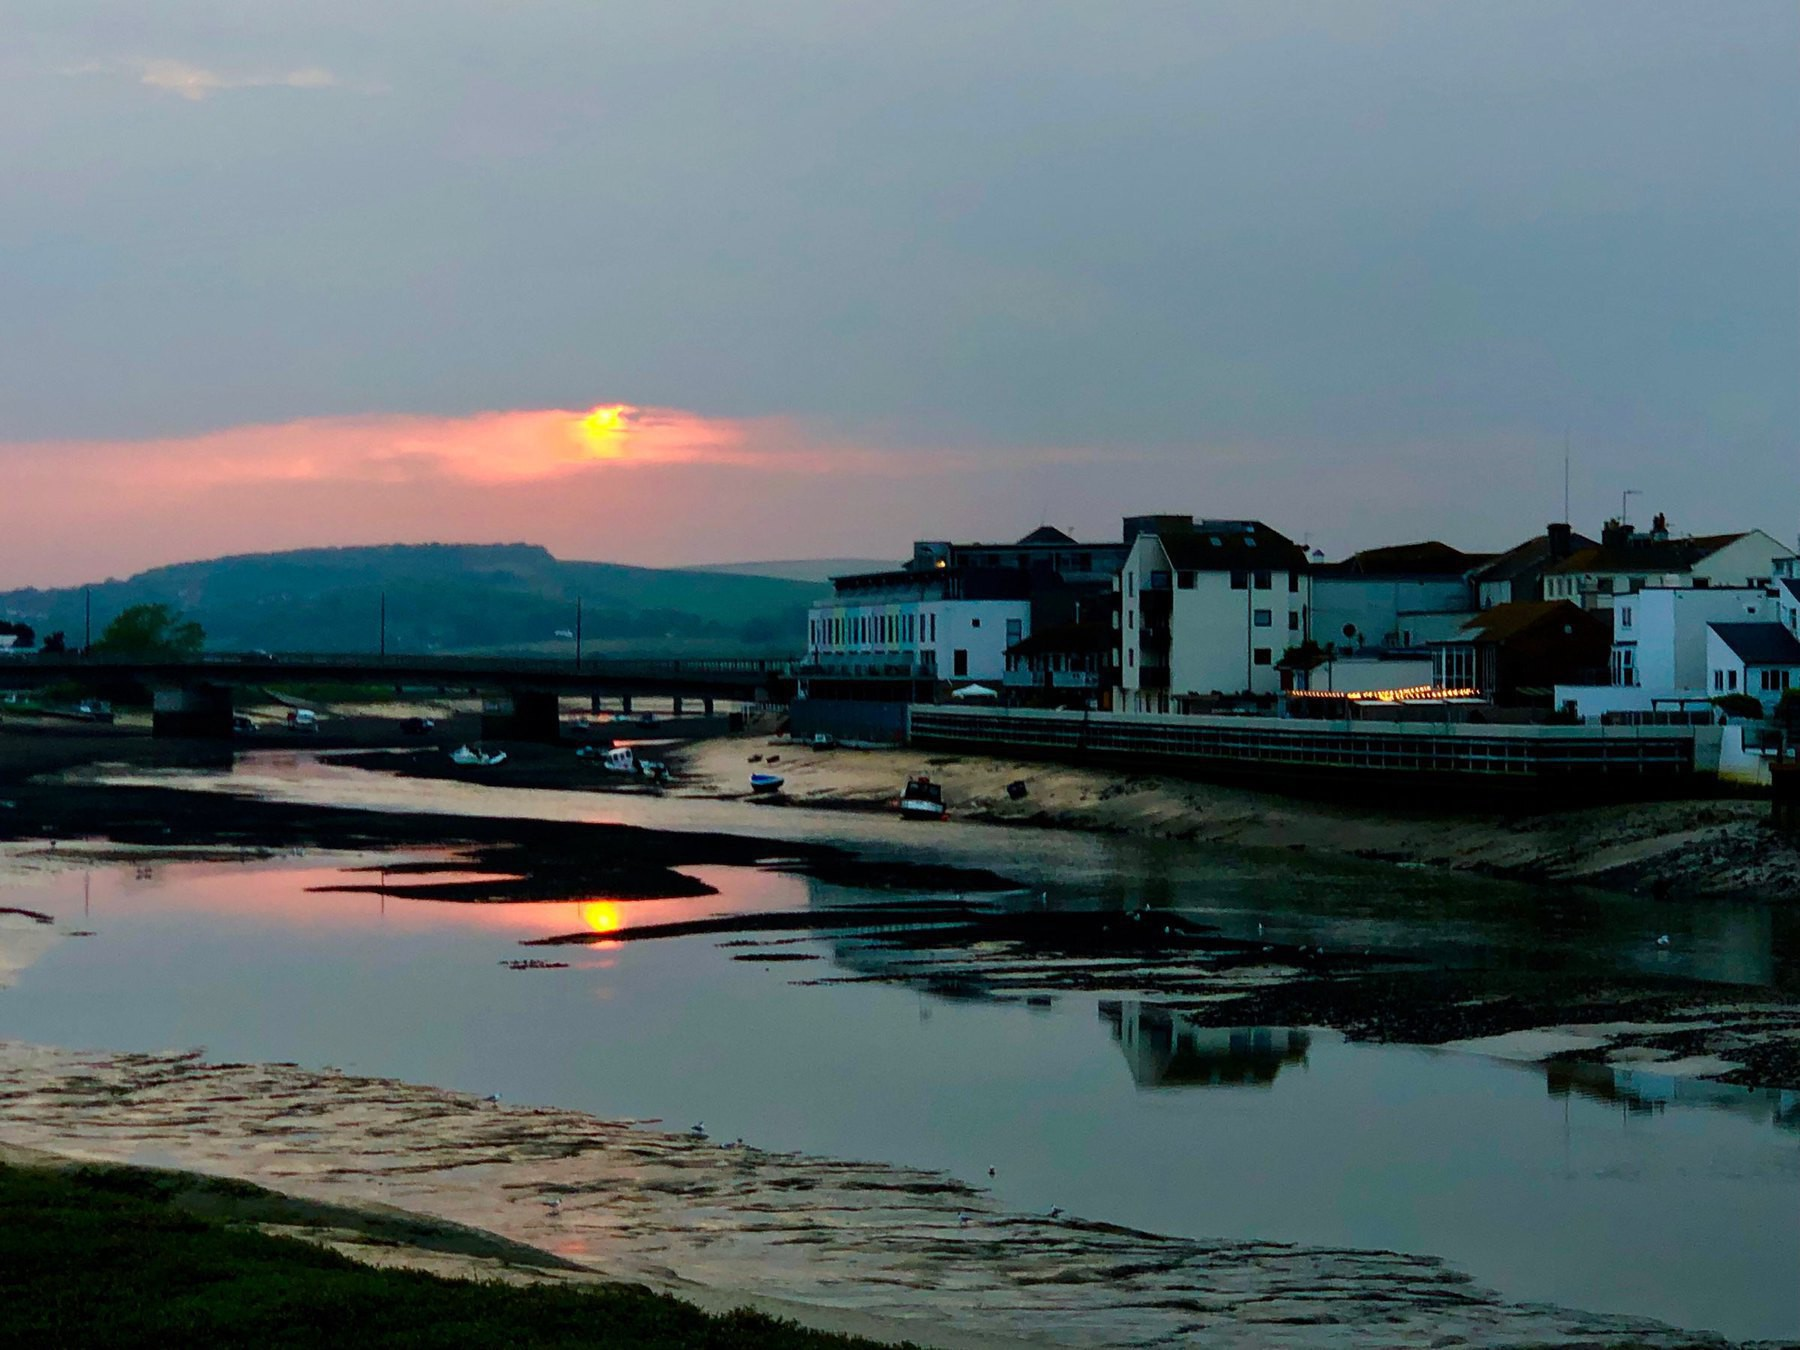 View towards New Shoreham and the South Downs from the Adur Ferry Bridge.